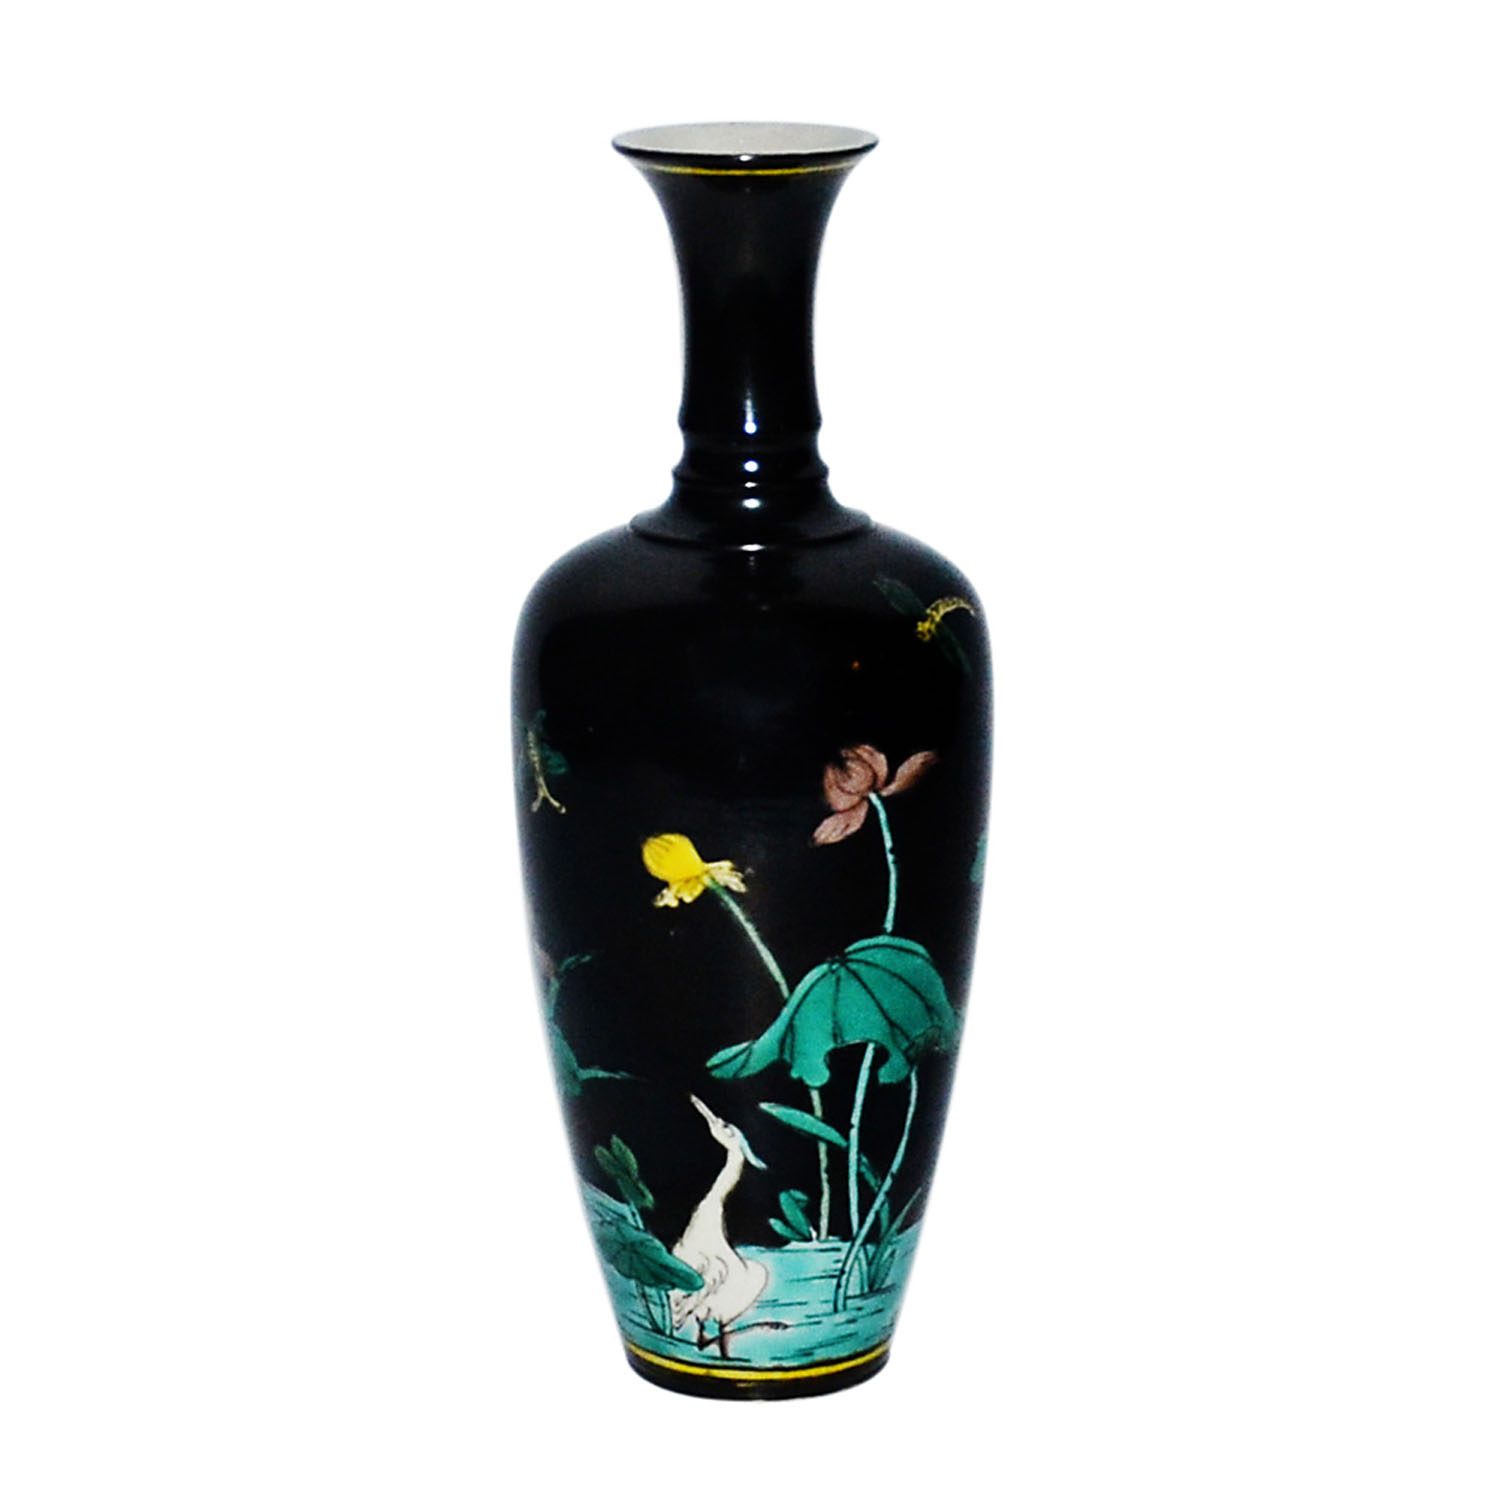 "Lot 252 - 墨釉素三彩""一路(露)榮華""觀音瓶 A Black Ground Sancai Bottle Vase with Auspicious Crane and Lotus  Height: 7½"